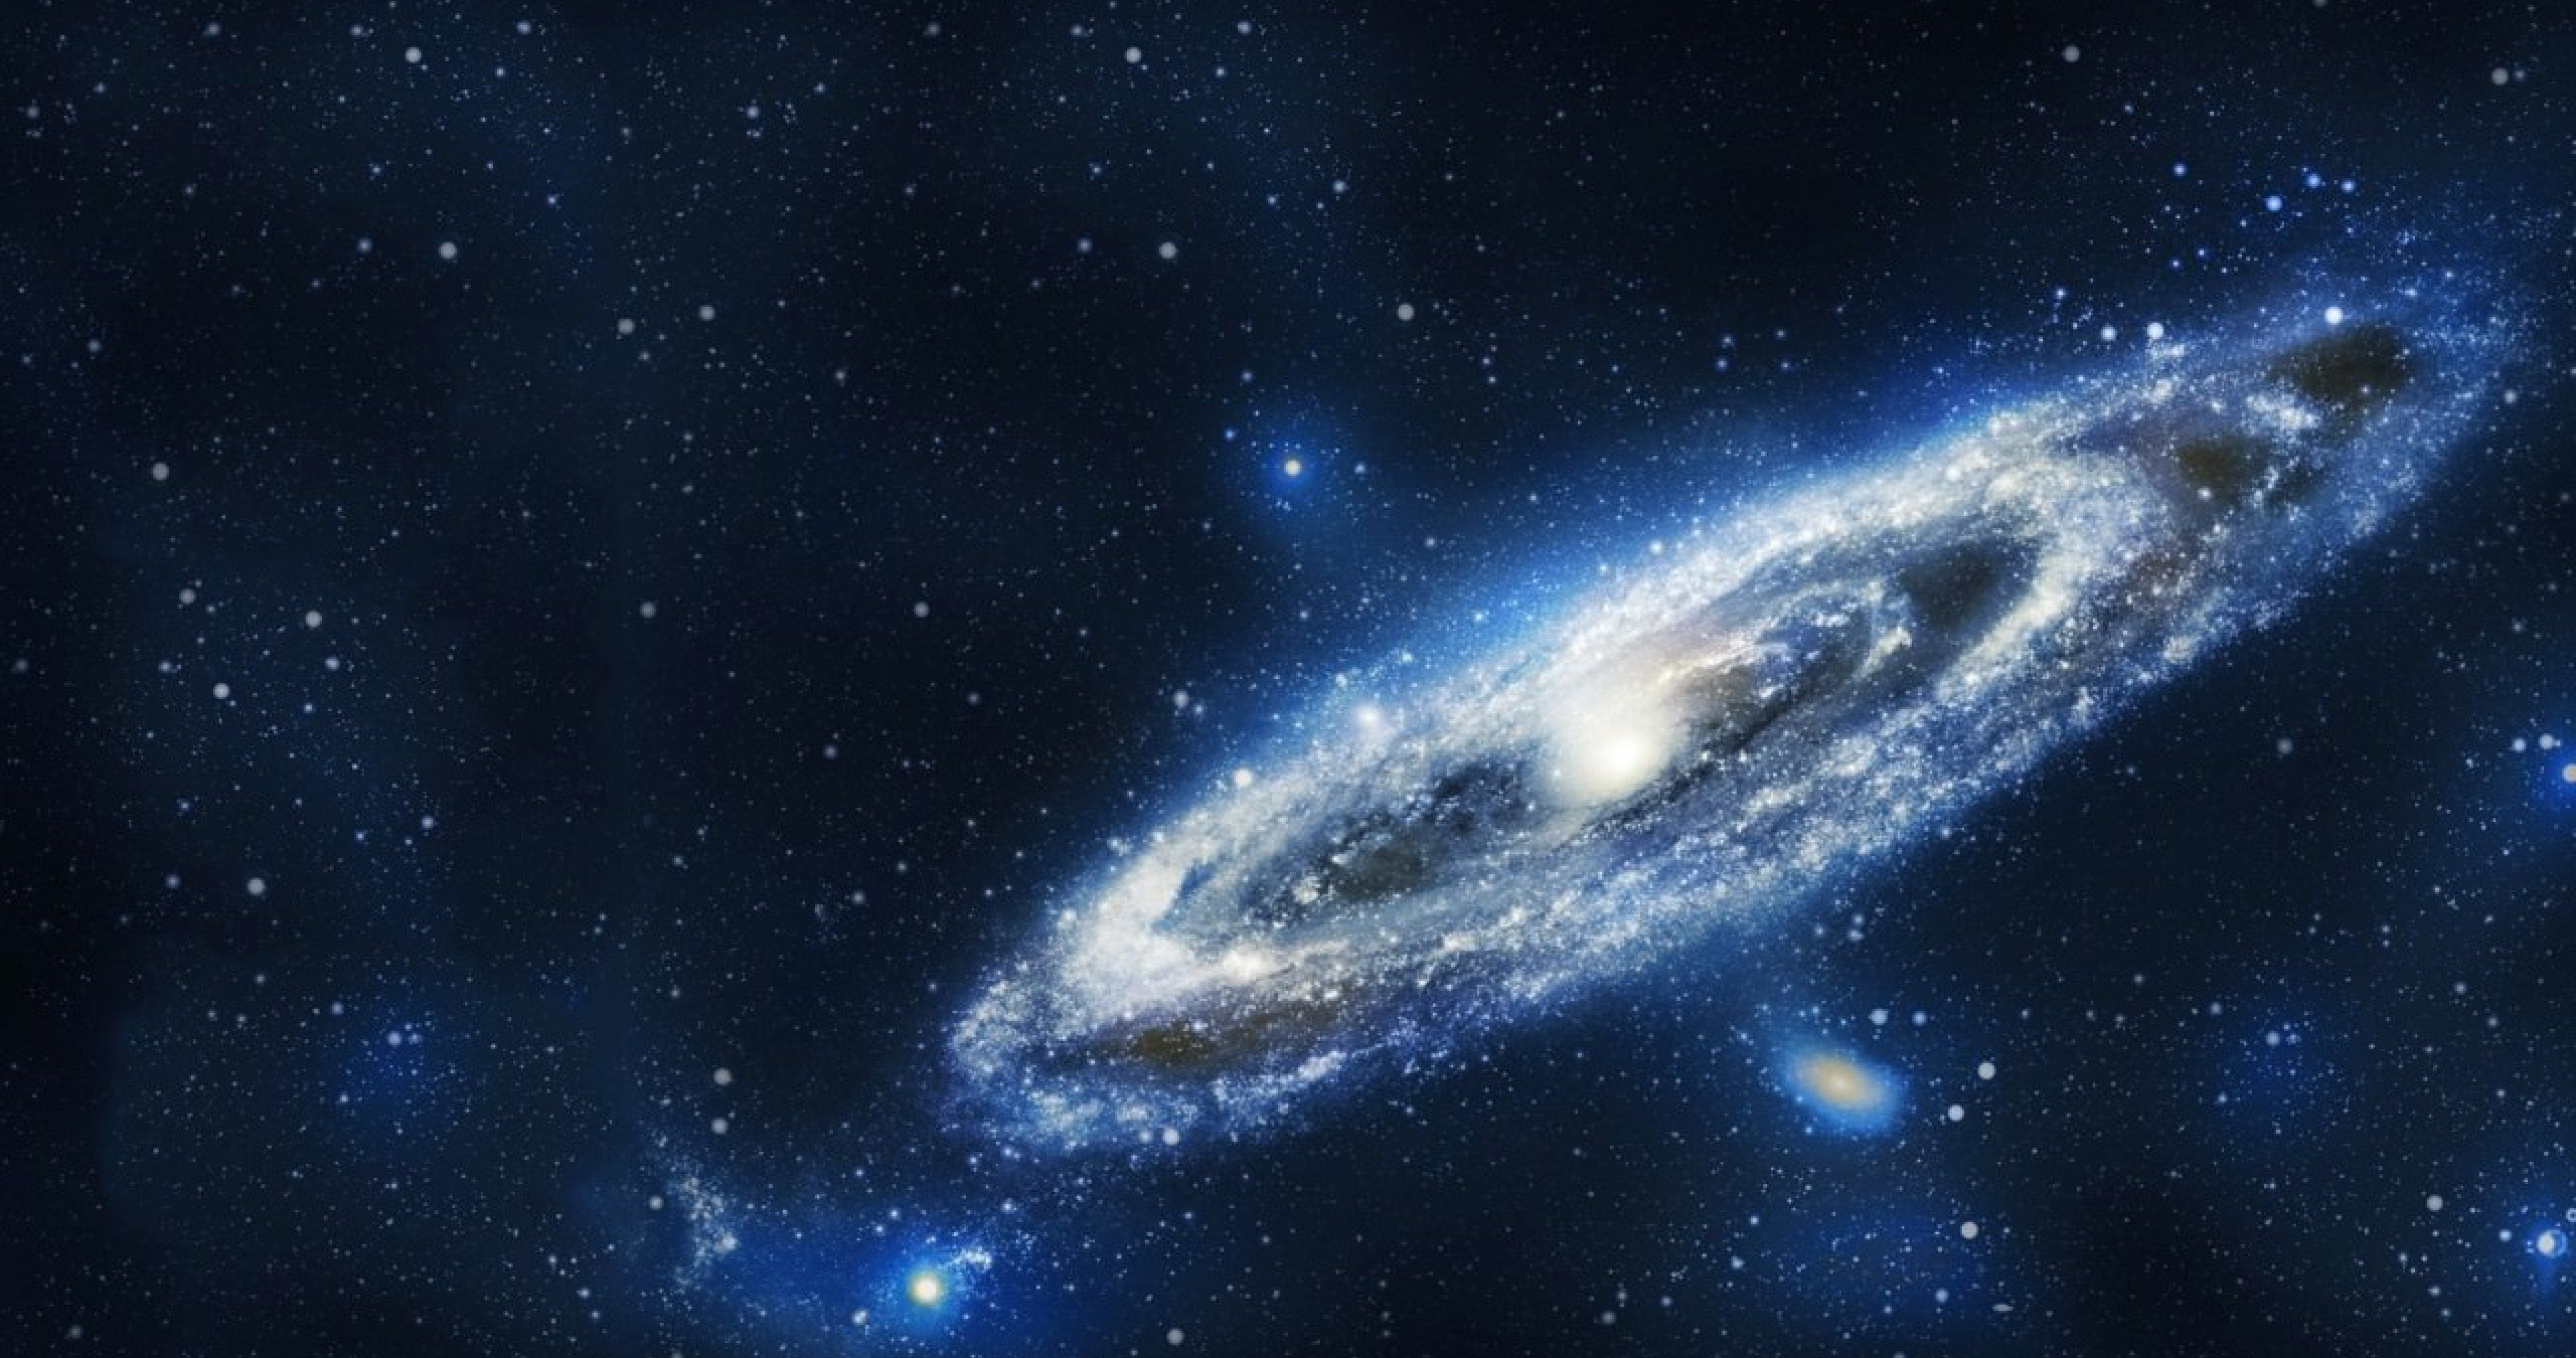 universe wallpaper 4k,outer space,galaxy,sky,atmosphere,universe